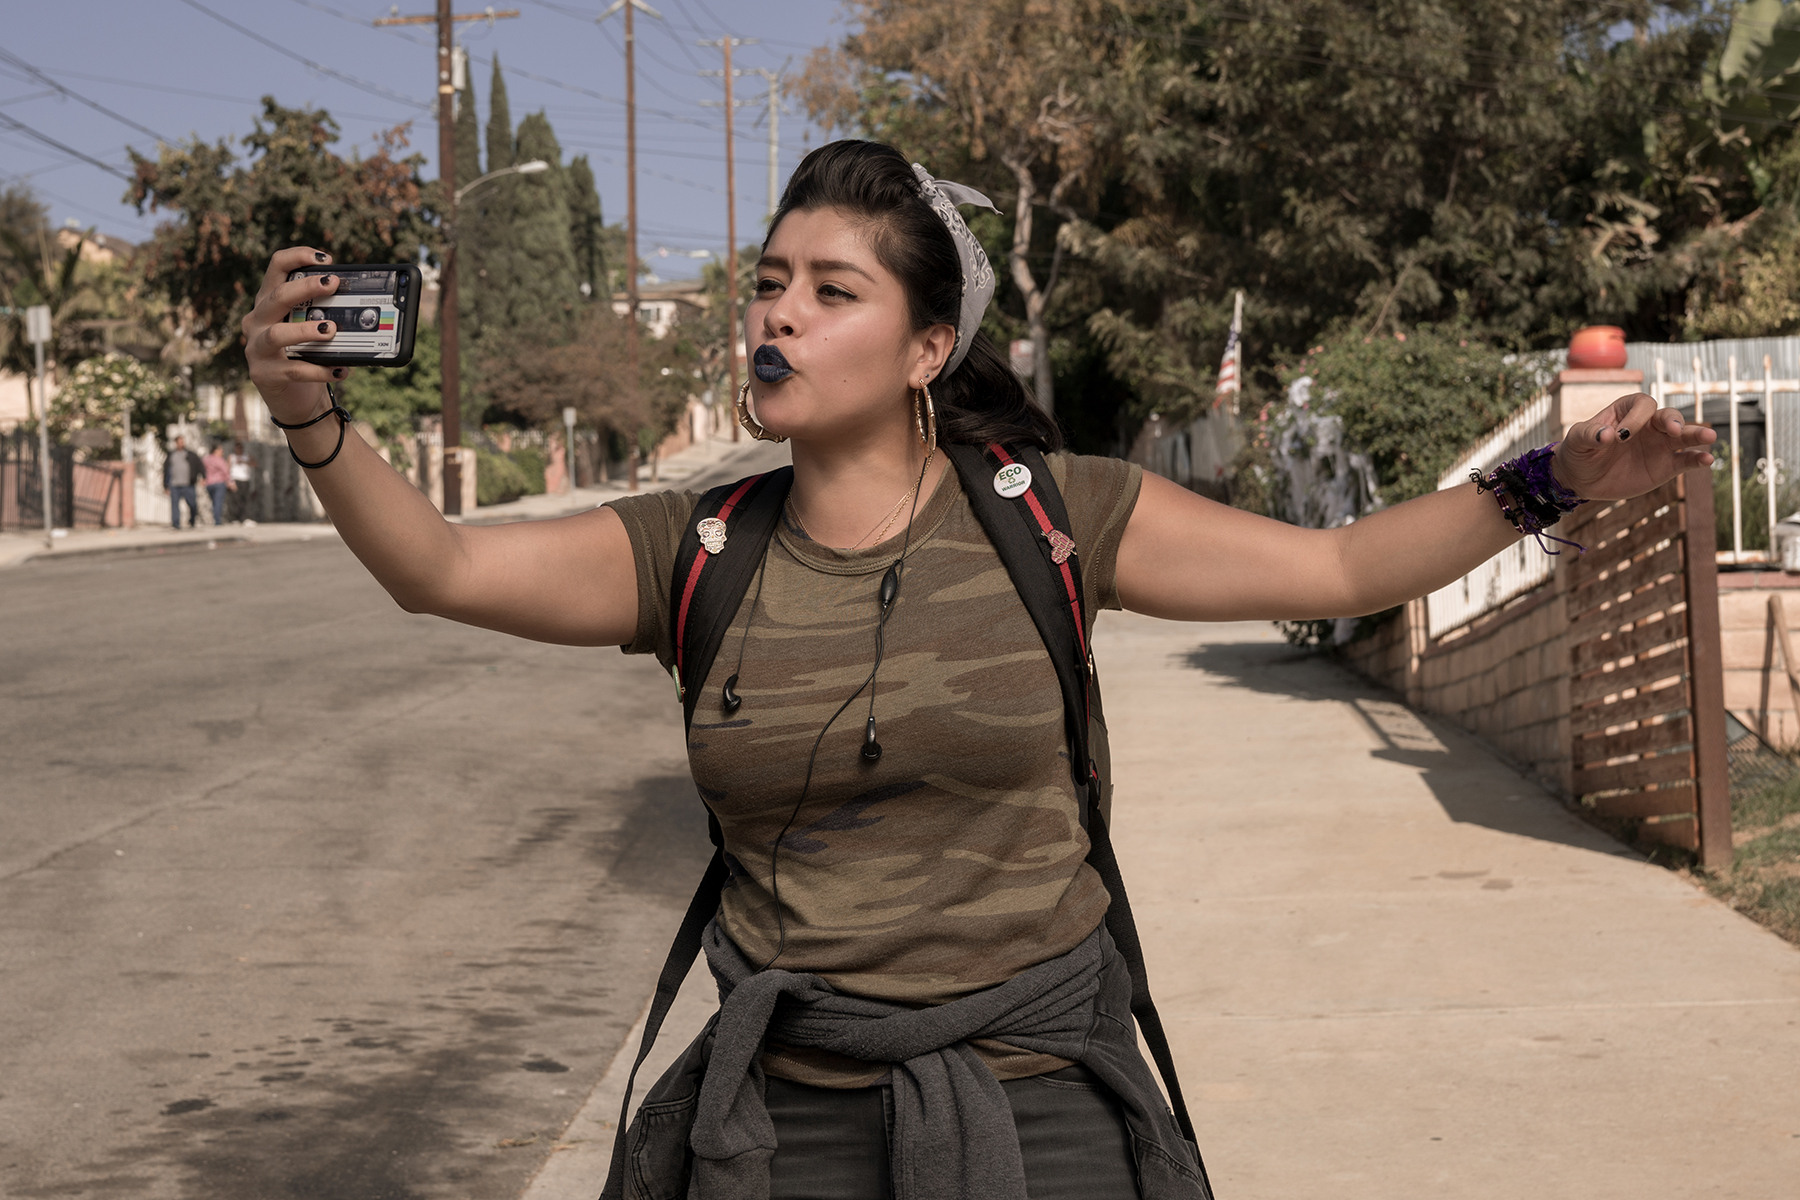 What Latino Critics Are Saying About Starz's Queer Latina Series 'Vida'